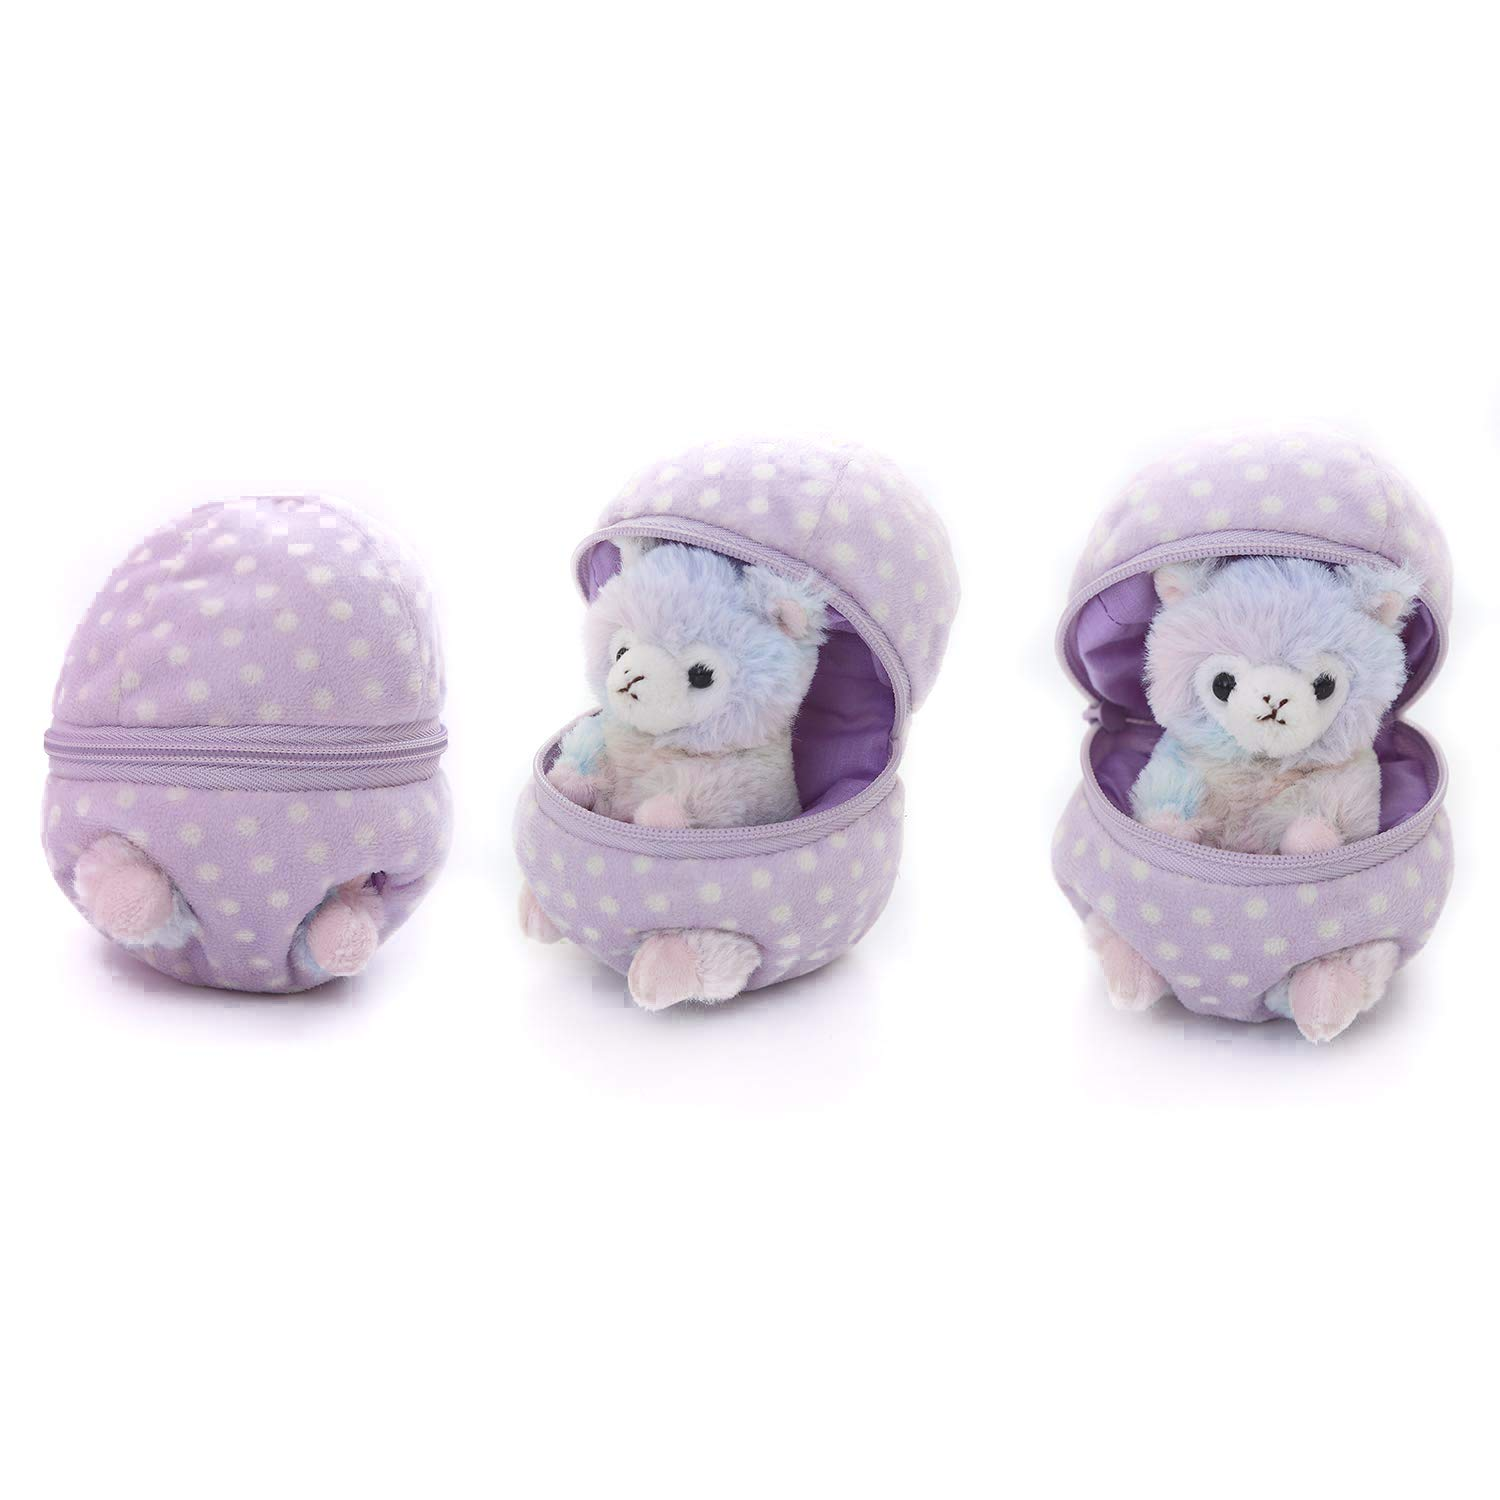 Plushland Plush Stuffed Animal 6 Inches Surprise Zip Up Egg Hideaway | Cute, Purple Pastel and Polka Dot Easter Colors | Spring Inspired Gift for Girls and Boys Birthday Mother's Day (Easter Llama)